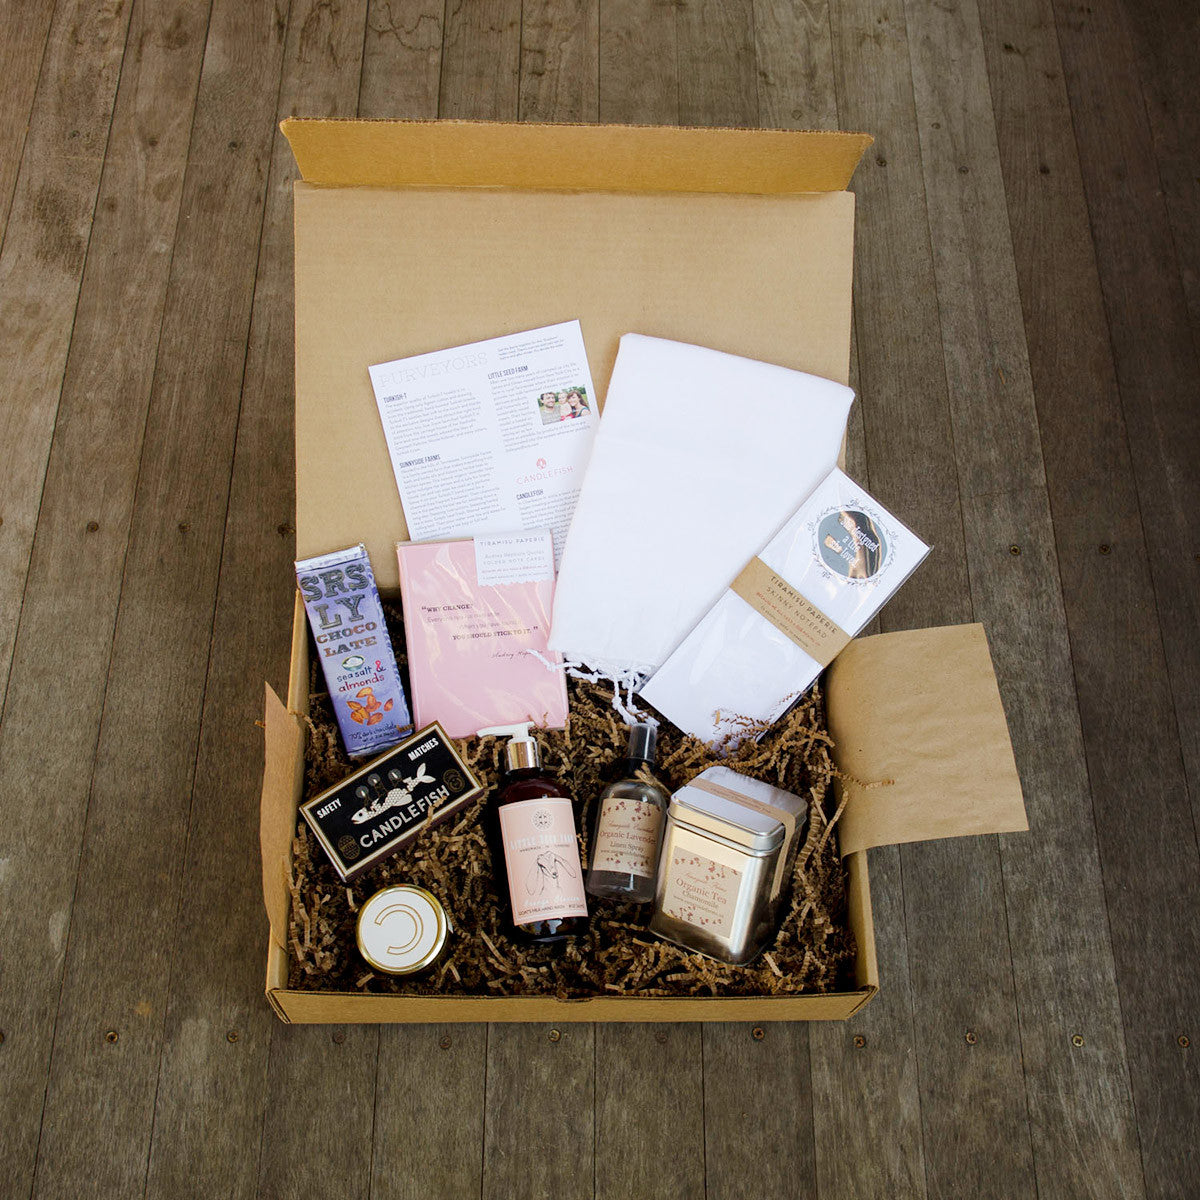 A Peek Inside the Box - The First Women's Deluxe Batch Subscription Discovery Box